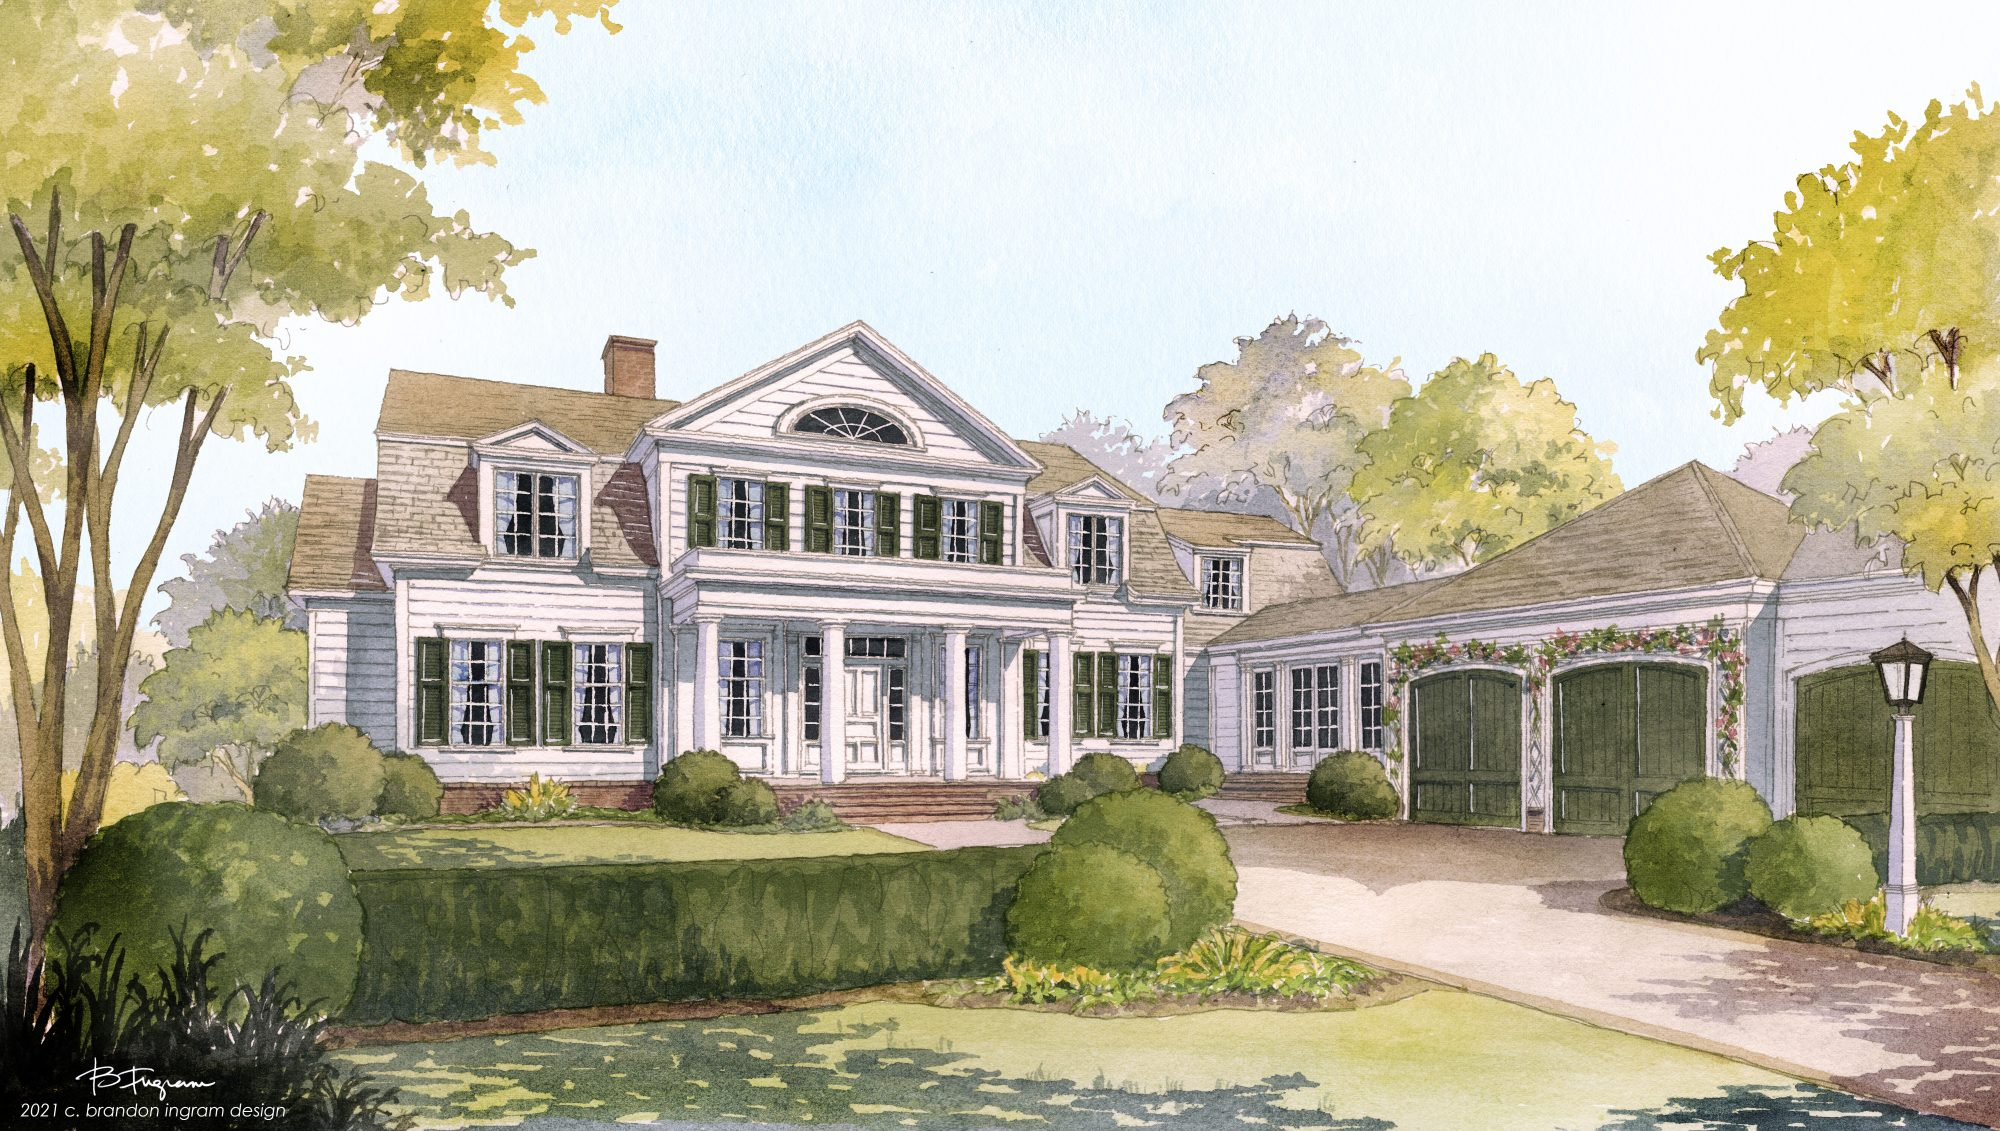 Rending of two story traditional white house